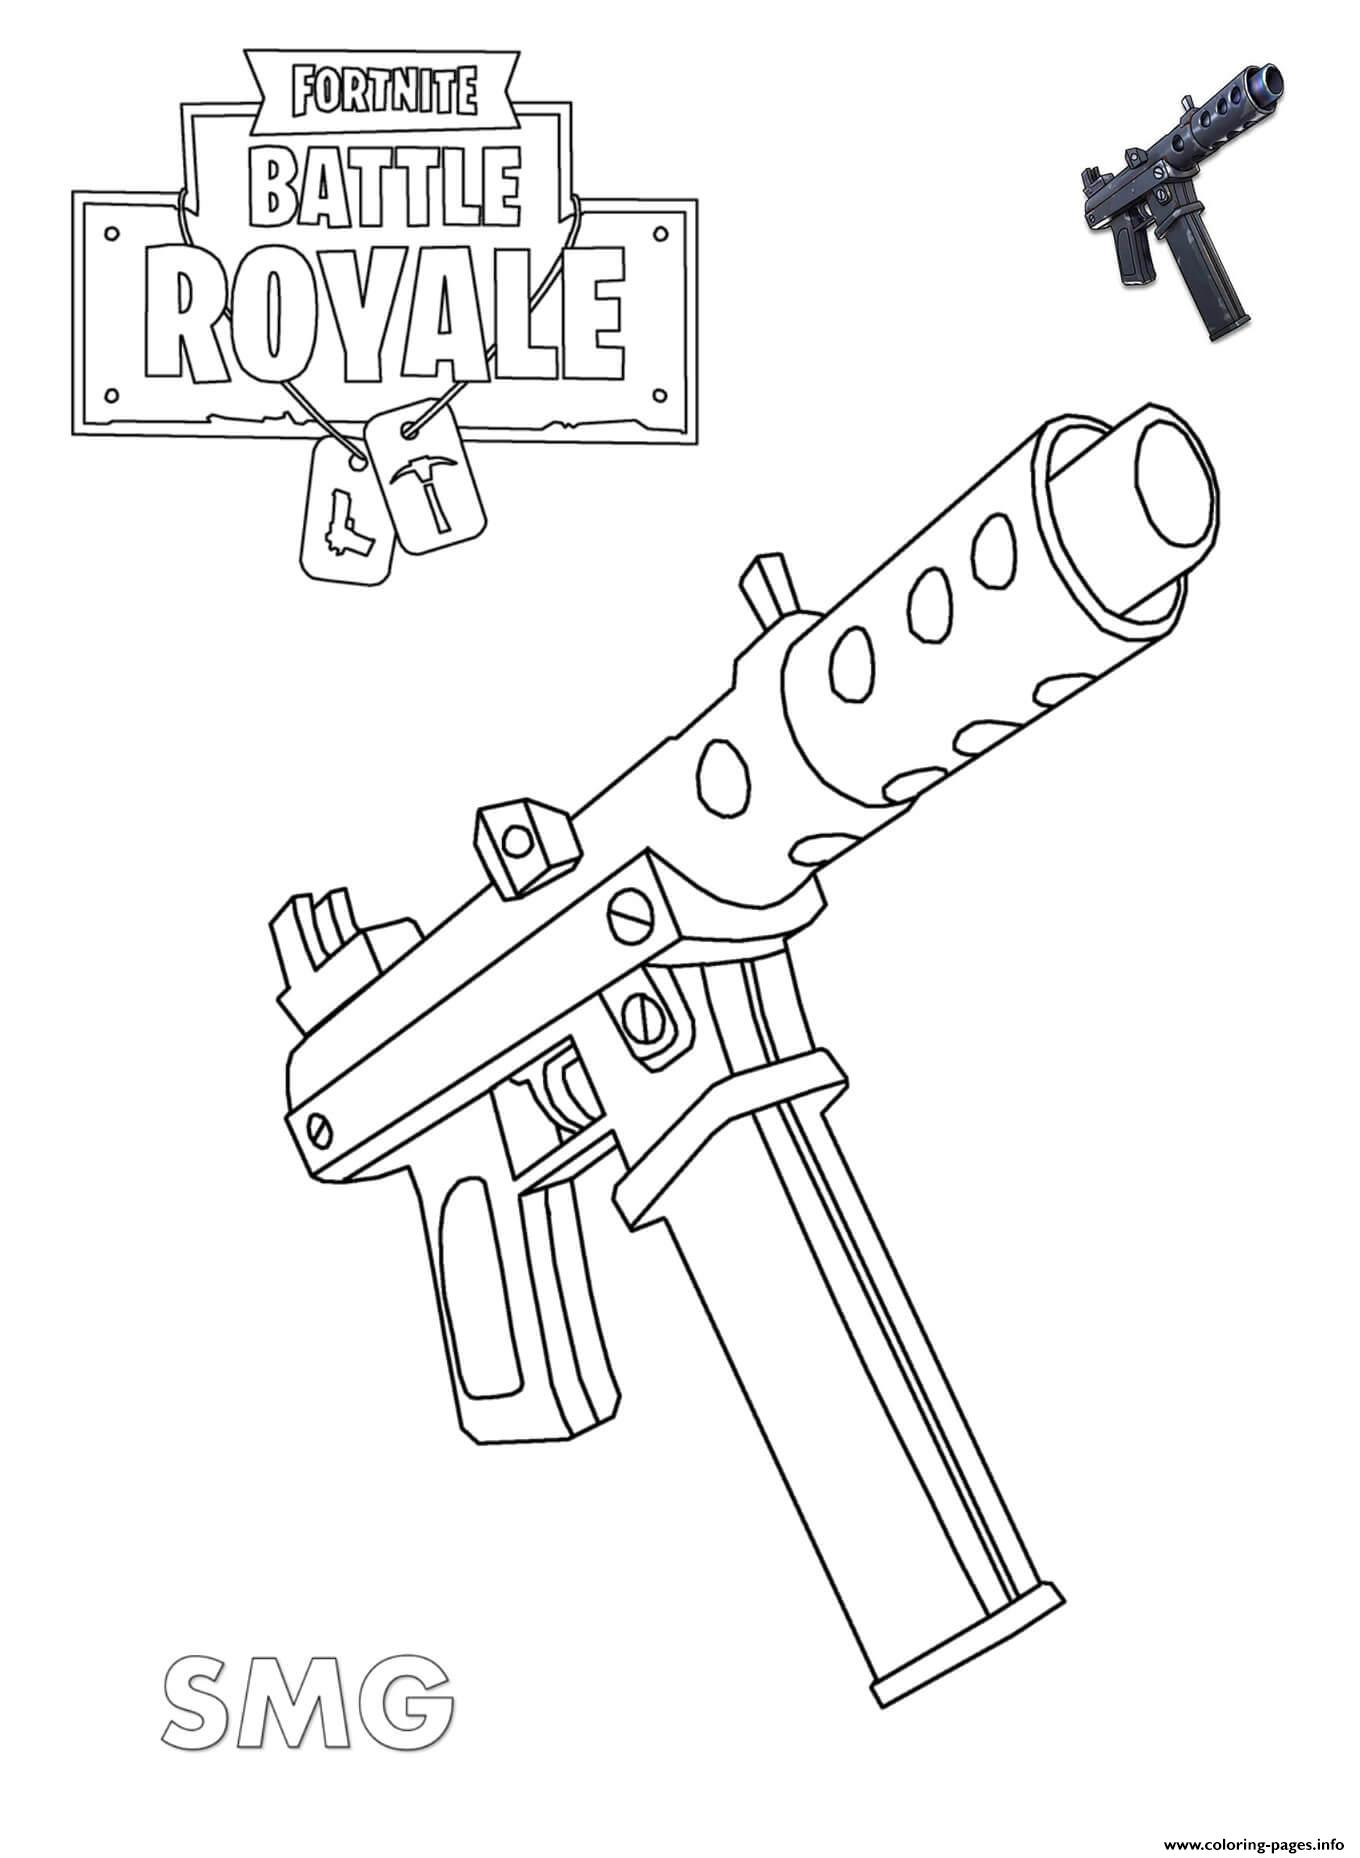 Machine Pistol Fortnite Coloring Pages Printable